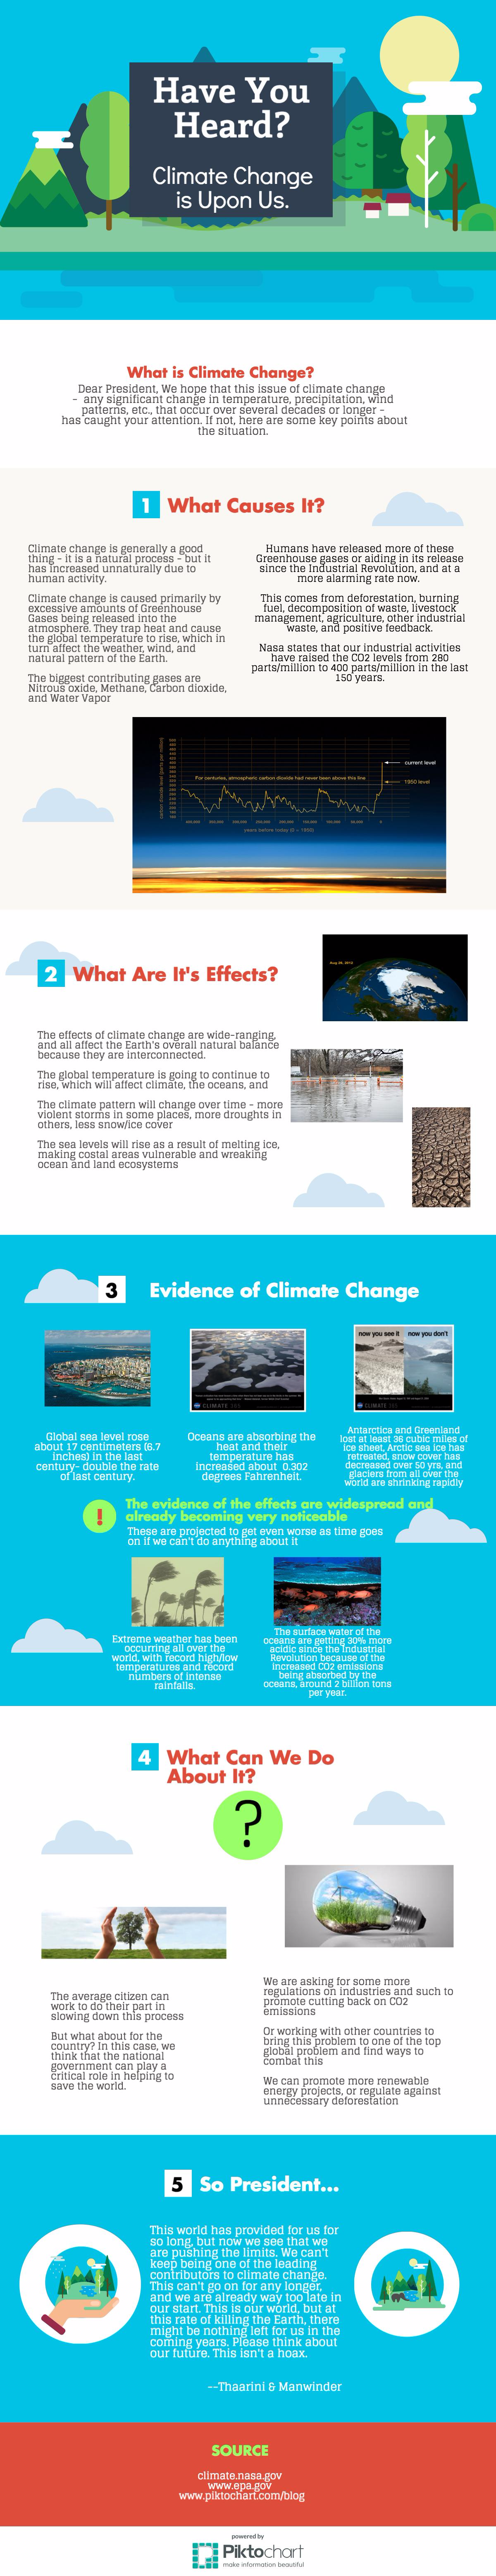 Climate Change Calamity by Thaarini & Manwinder - Letters to